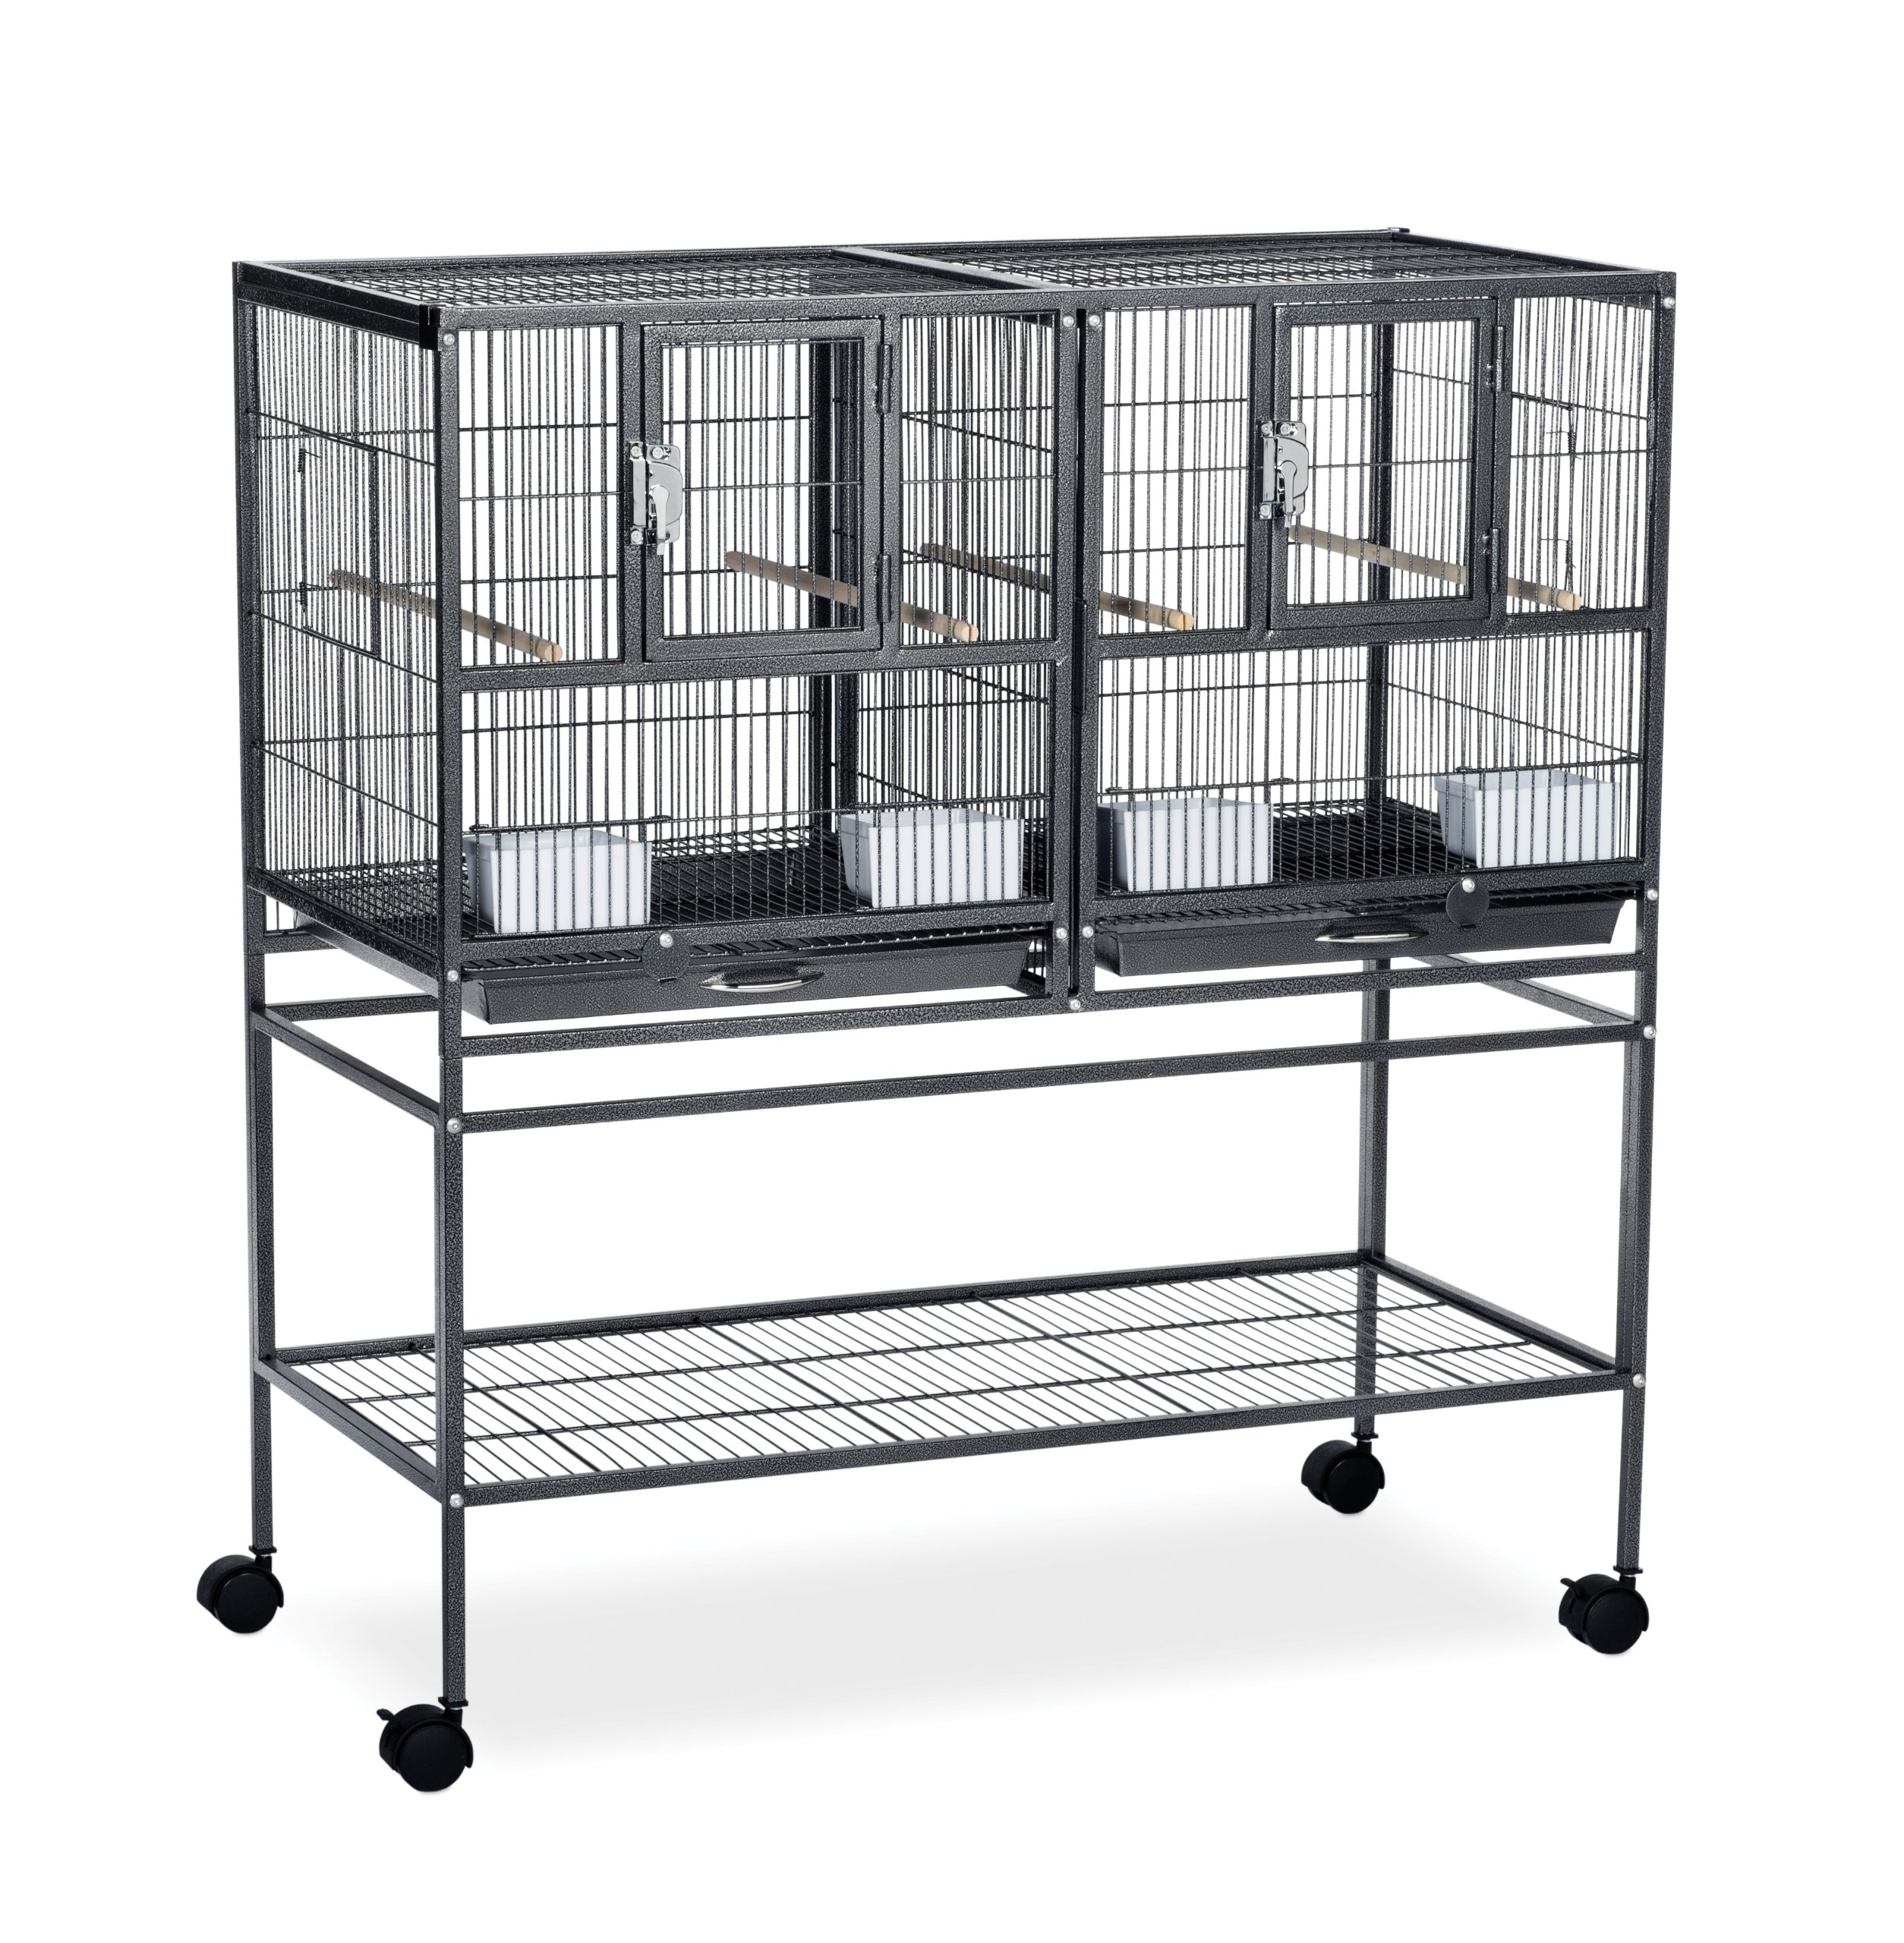 Prevue Pet Products F070 Hampton Deluxe Divided Breeder Cage with Stand by Prevue Pet Products (Image #1)